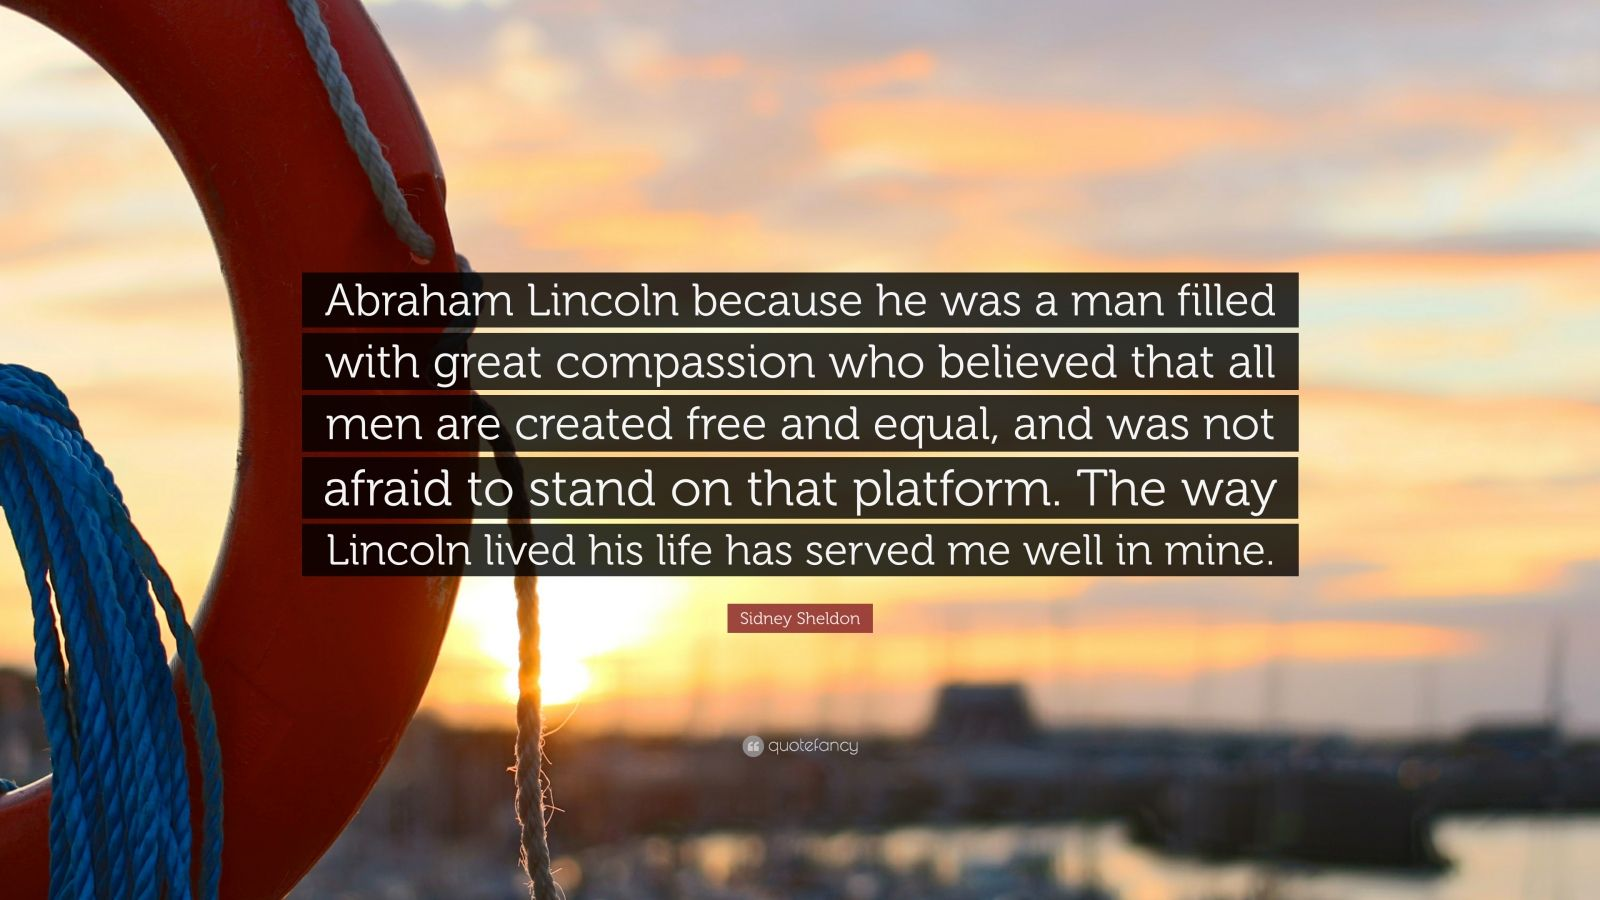 """Sidney Sheldon Quote: """"Abraham Lincoln because he was a man filled with great compassion who believed that all men are created free and equal, and was not afraid to stand on that platform. The way Lincoln lived his life has served me well in mine."""""""